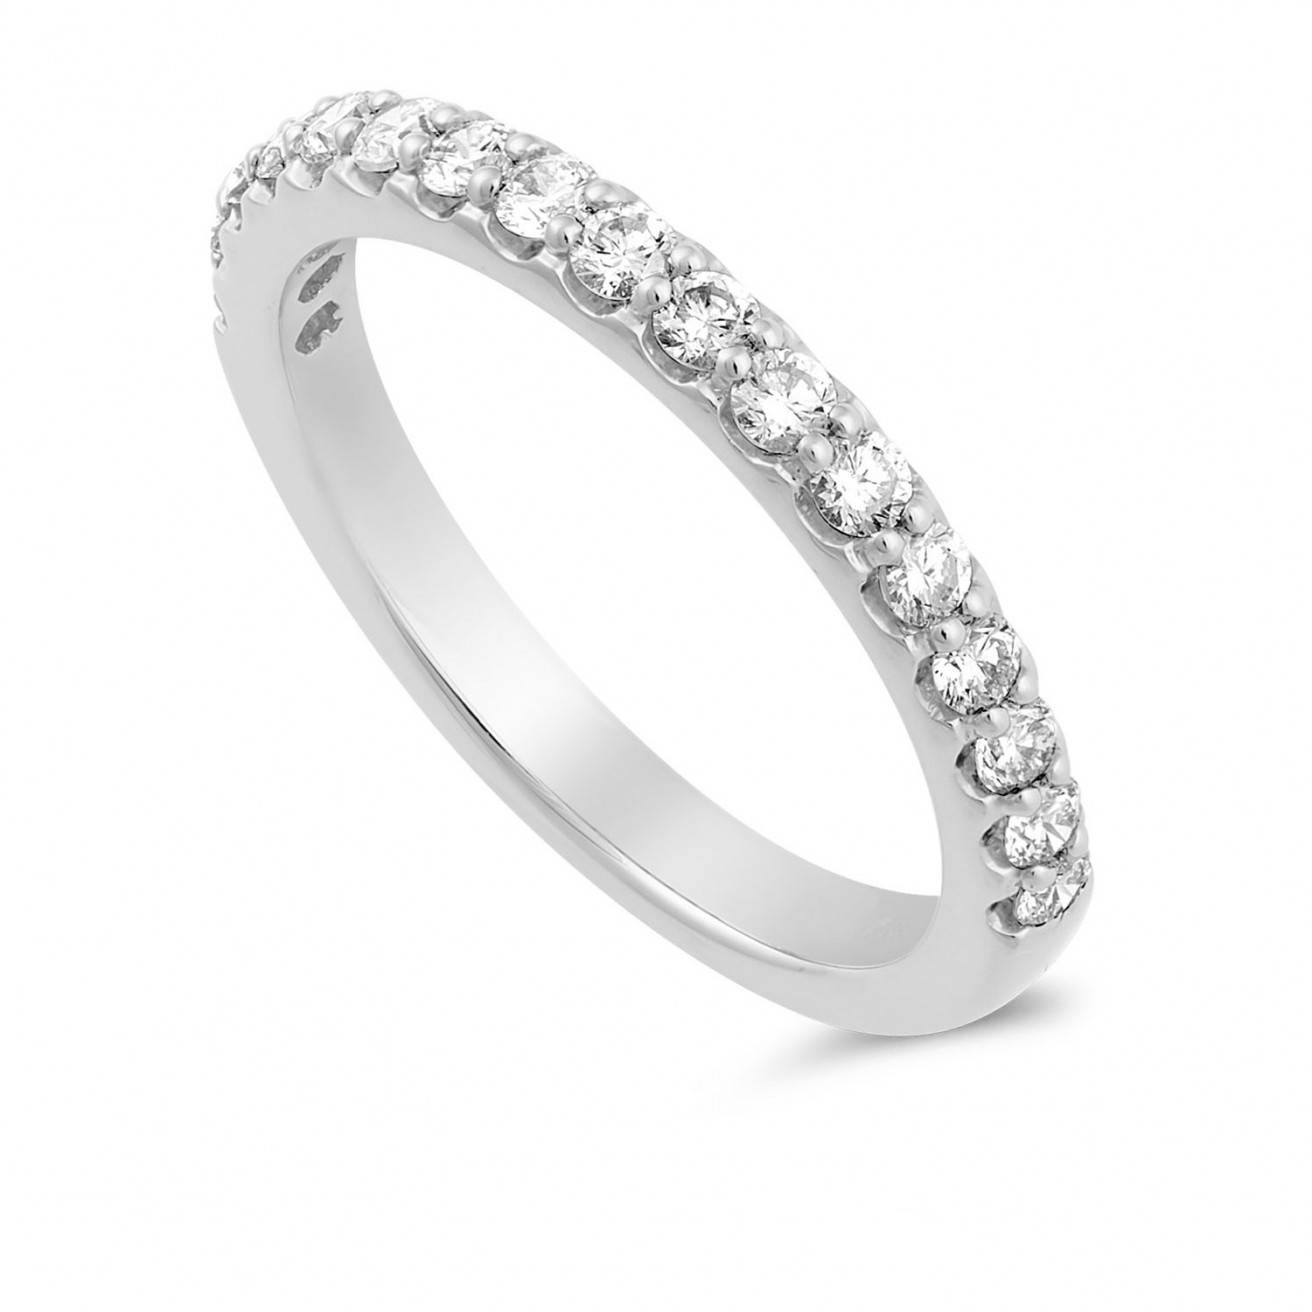 Buy Platinum Wedding Bands Online – Fraser Hart Intended For Recent Platnium Wedding Bands (View 4 of 15)